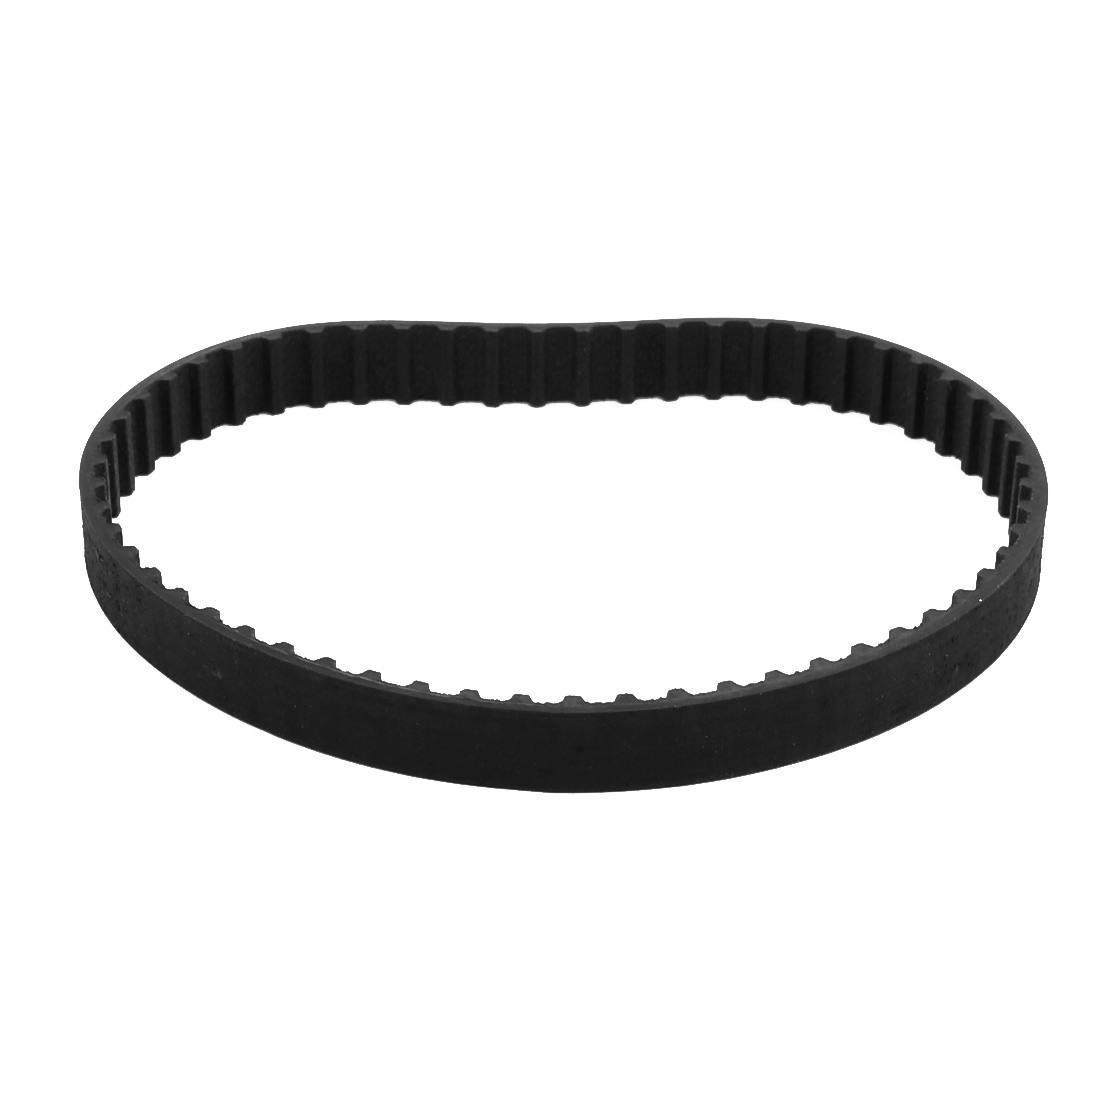 114XL 57 Teeth 10mm Width 5.08mm Pitch Stepper Motor Rubber Timing Belt Black